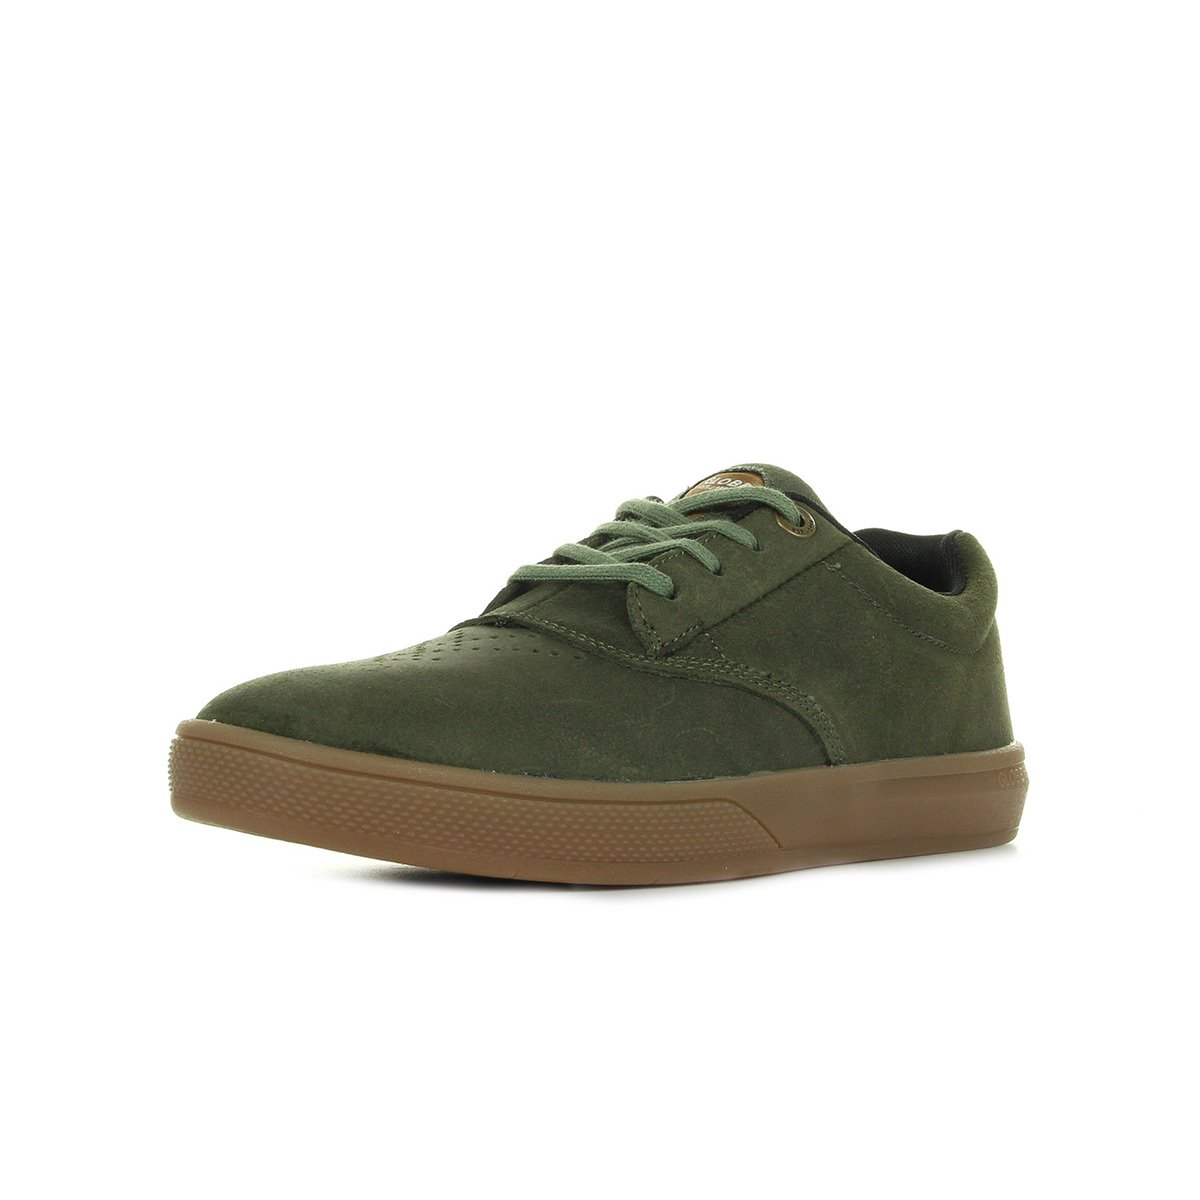 Globe Men's The Eagle SG Skateboarding Shoe 8 D(M) US|Olive/Gum